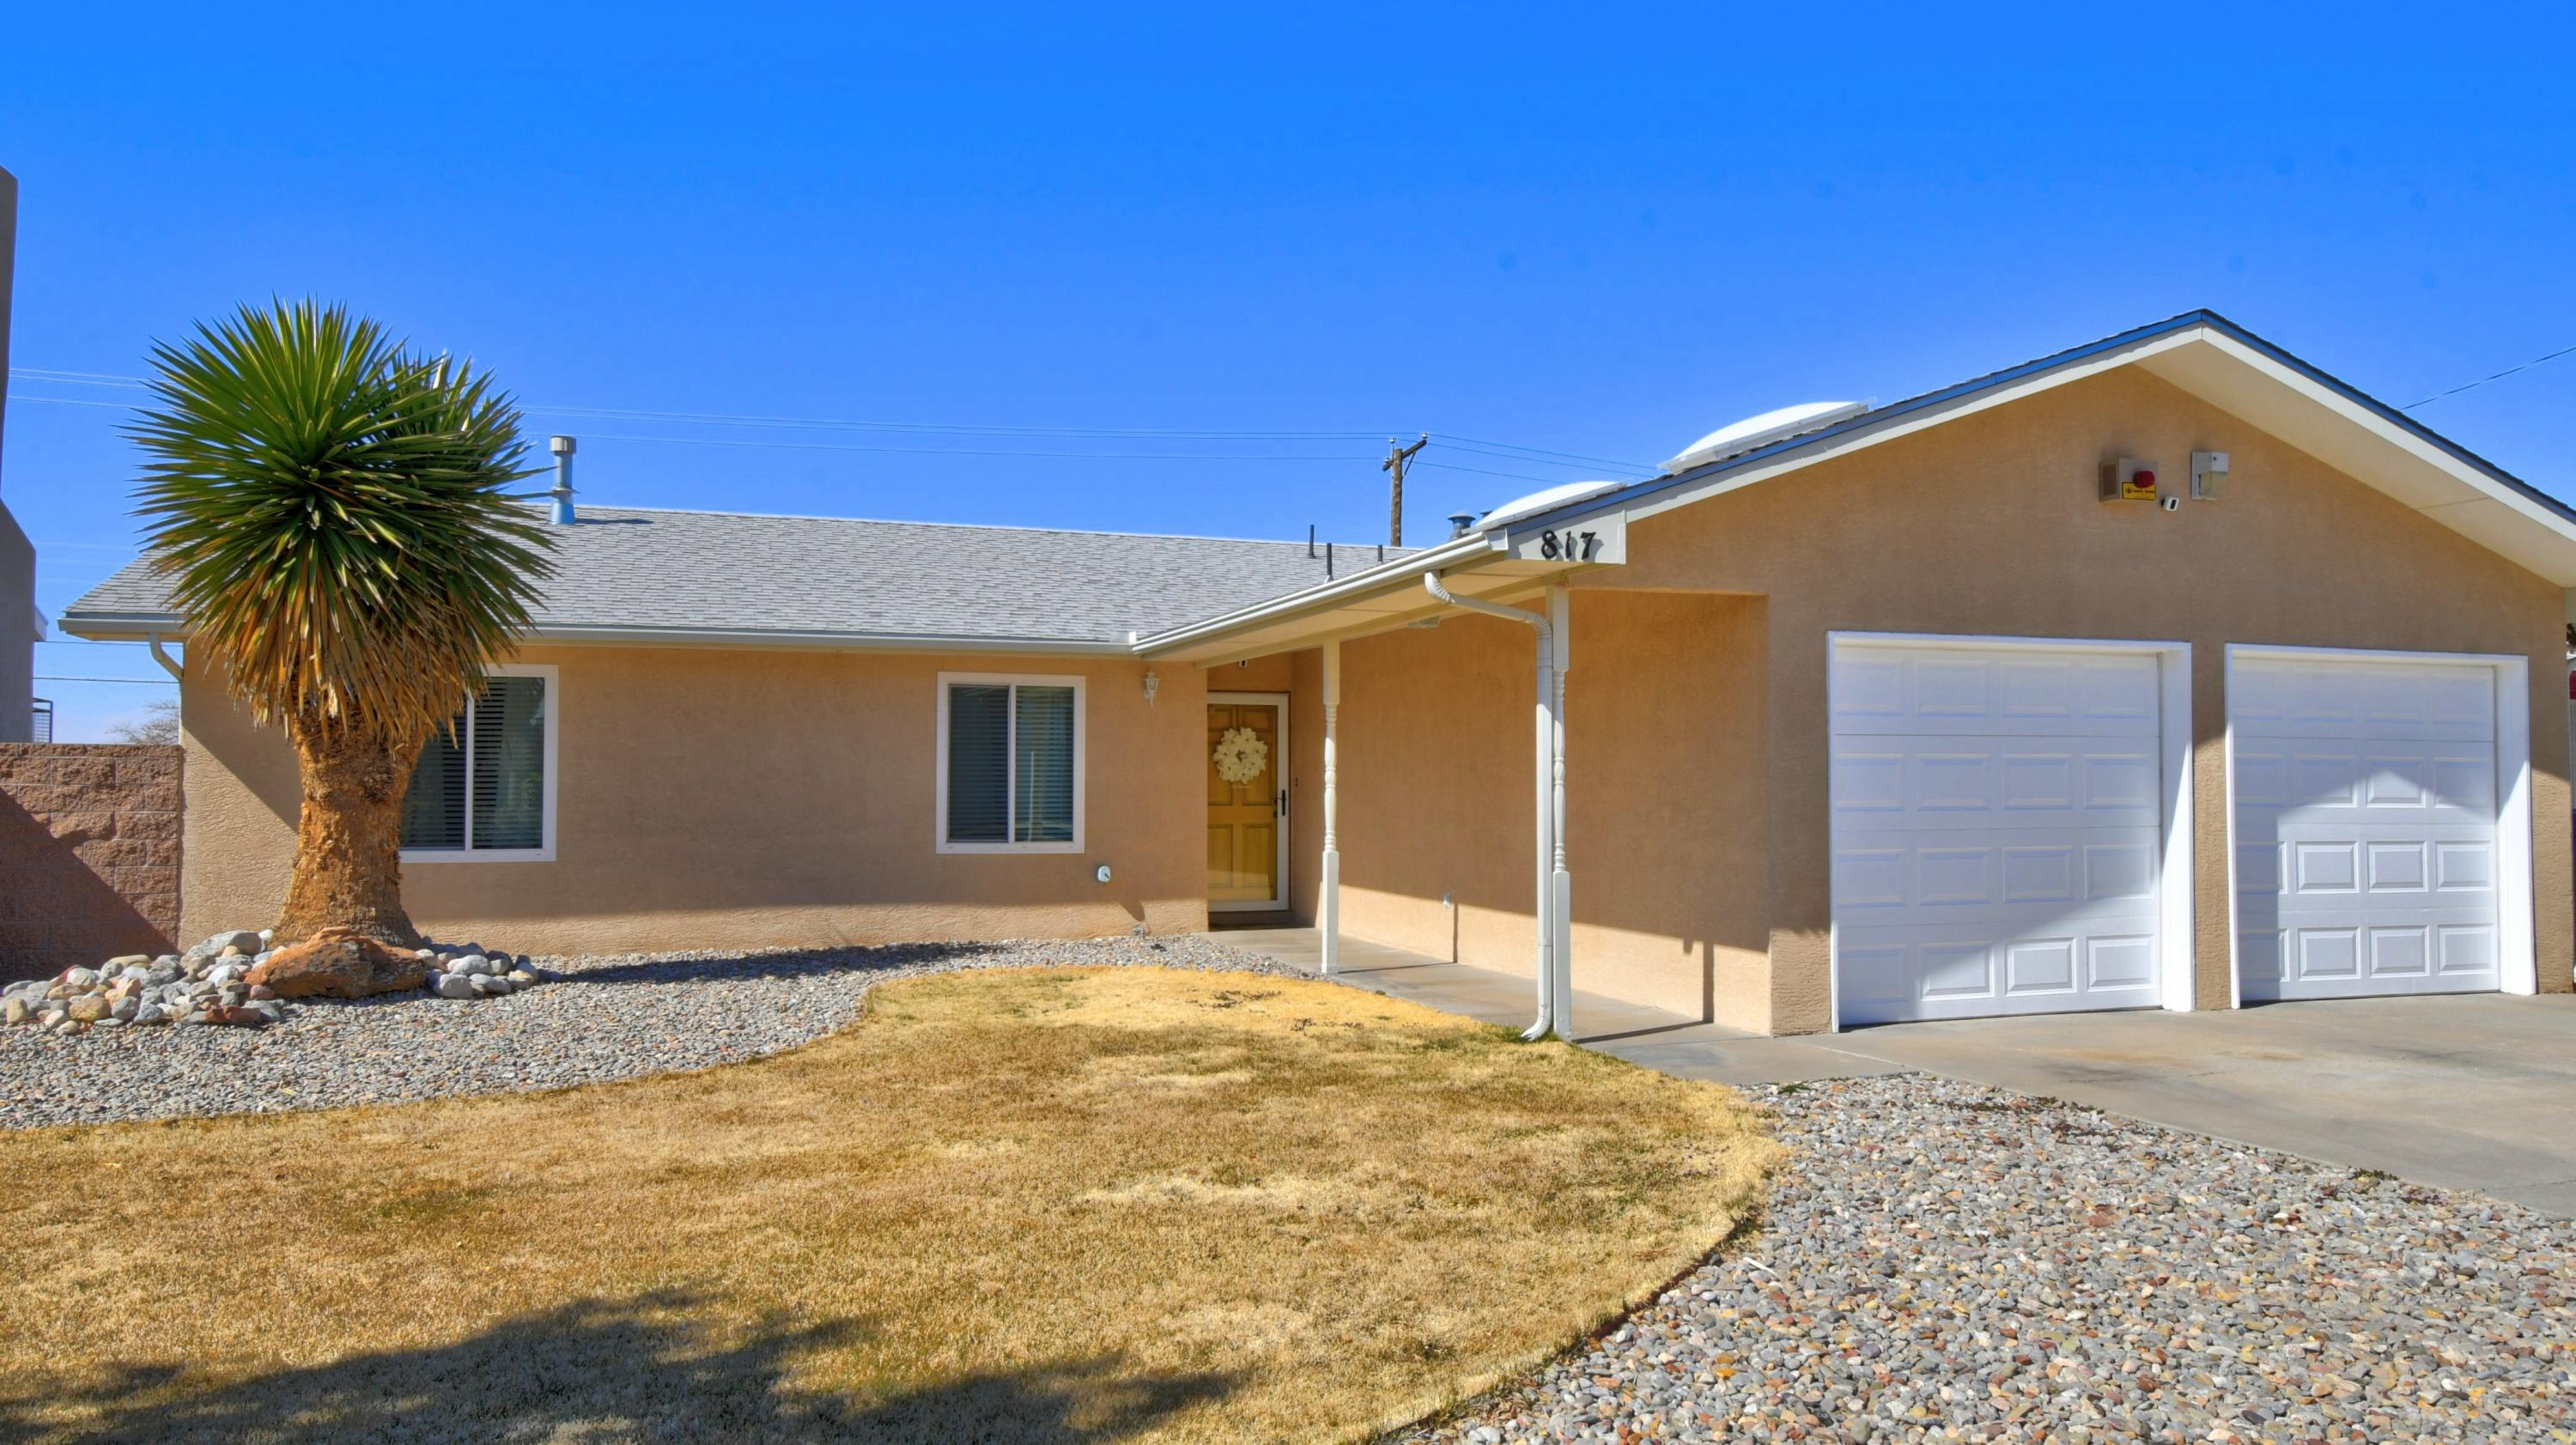 Located in the desirable Marie Park this 3-bedroom, 2 bath, 2 car garage has an open floor plan with a large living room, fireplace and a double door that opens into the large back yard. The master suite is very generous with lots of space with separate sink, shower and built-in linin closet.  The home has been upgraded with refrigerated air, heater, thermal windows, stainless steel appliances, garbage disposal, water heater, stuck, recess lighting in kitchen & laundry, ceiling fans in all bedrooms, doorknob hardware, shatter proof storm door, side gate and mailbox. The seller is having a licensed roofer install a NEW ROOF with transferable warranty.  The seller also has the driveway expanded with concrete, so this added more parking for vehicles, RV'S or whatever your heart desires.